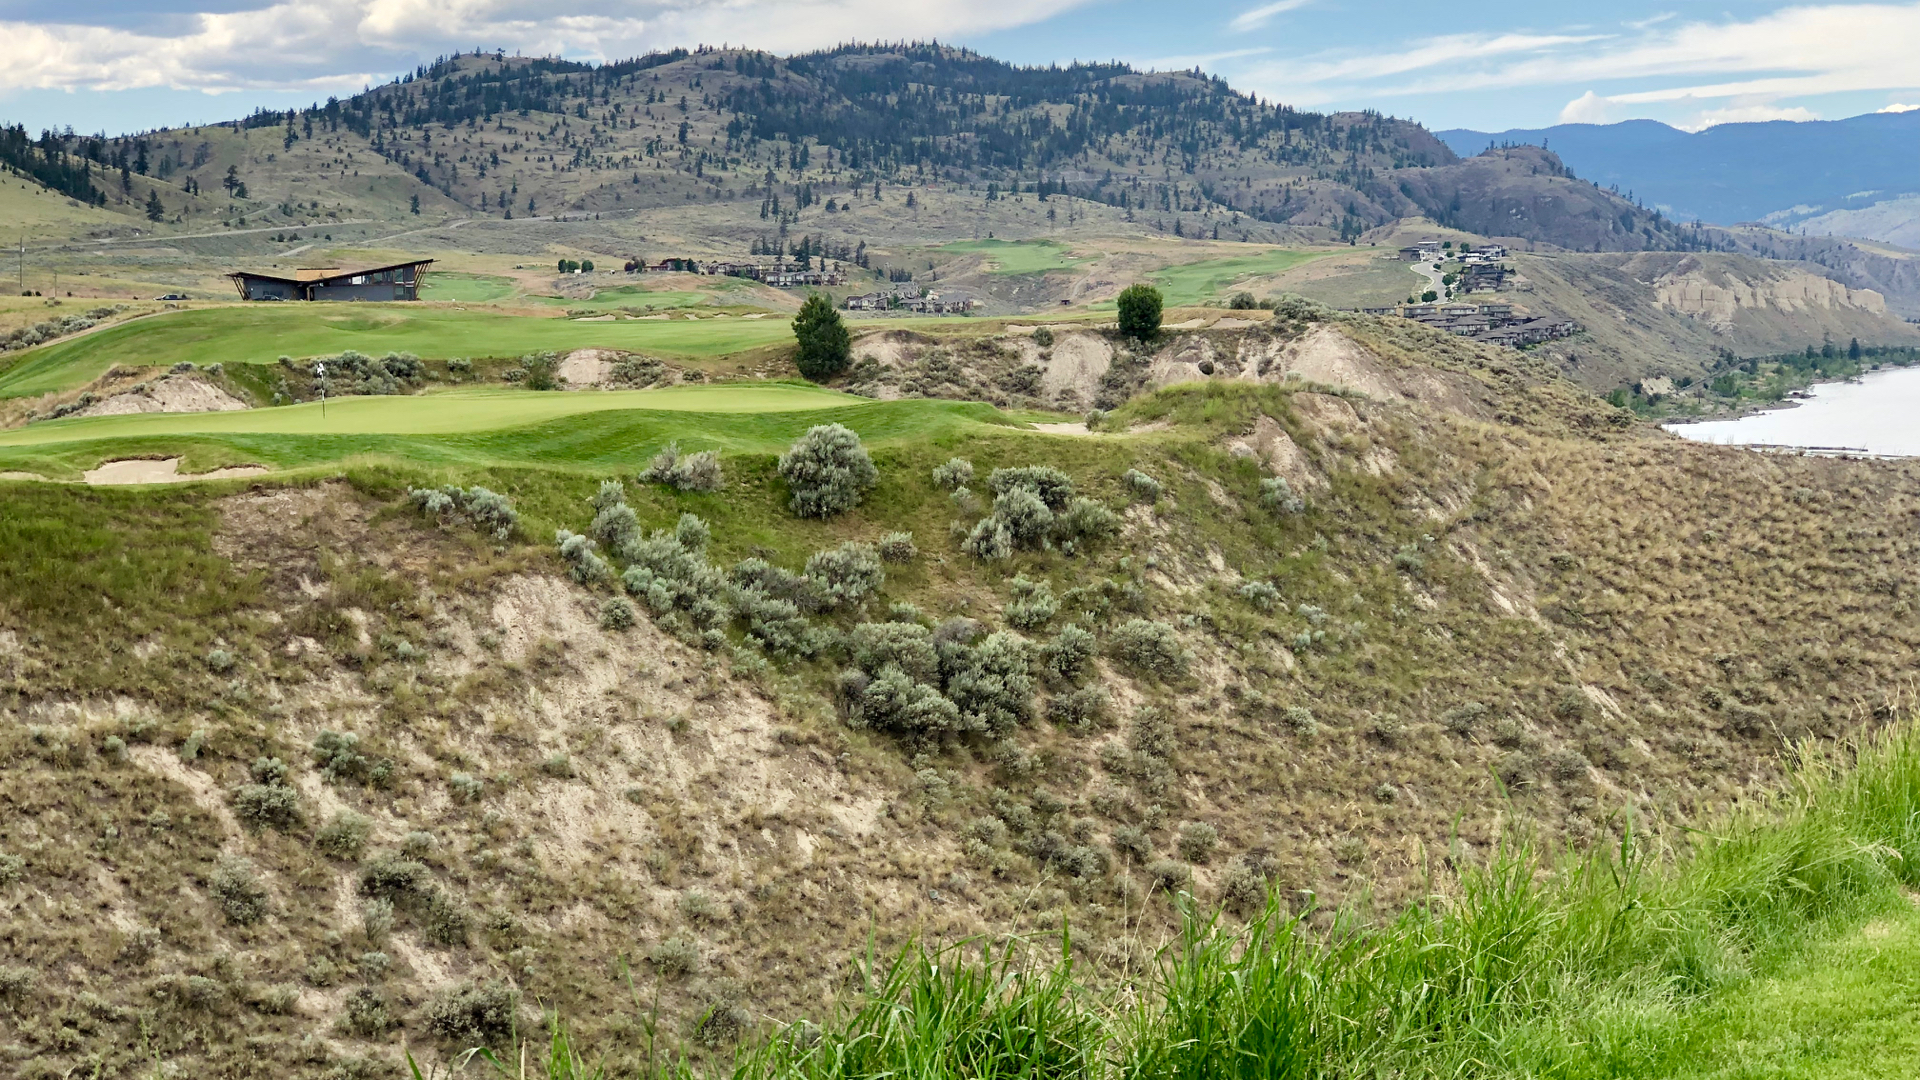 This is one of the toughest par 3s I've ever played. A narrow green perched on a cliff.